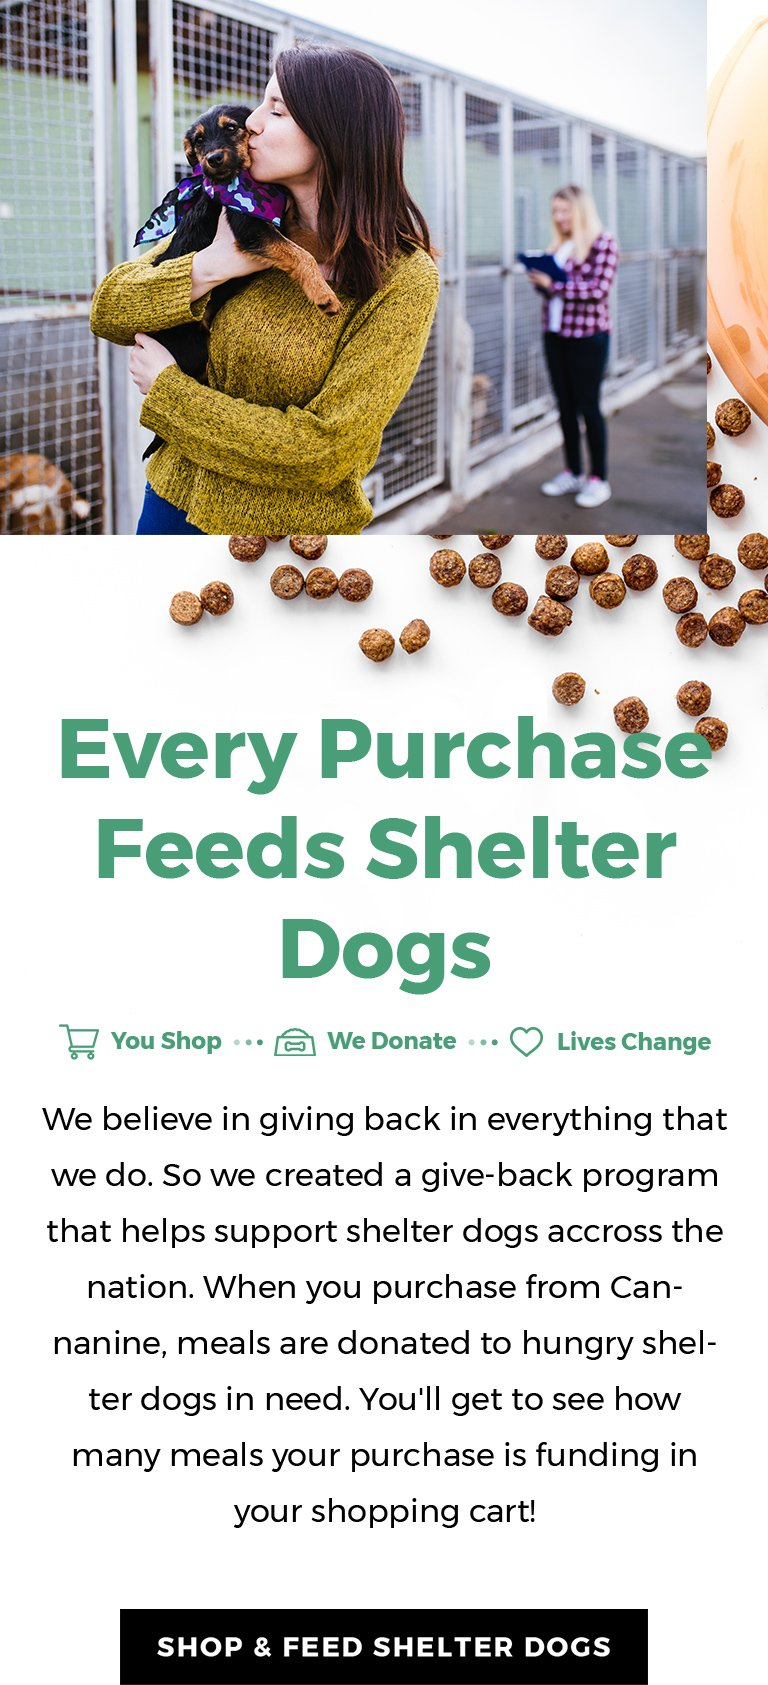 We believe in giving back in everything that we do. So we created a give-back program that helps support shelter dogs across the nation. When you purchase from Cannanine, meals are donated to hungry shelter dogs in need.